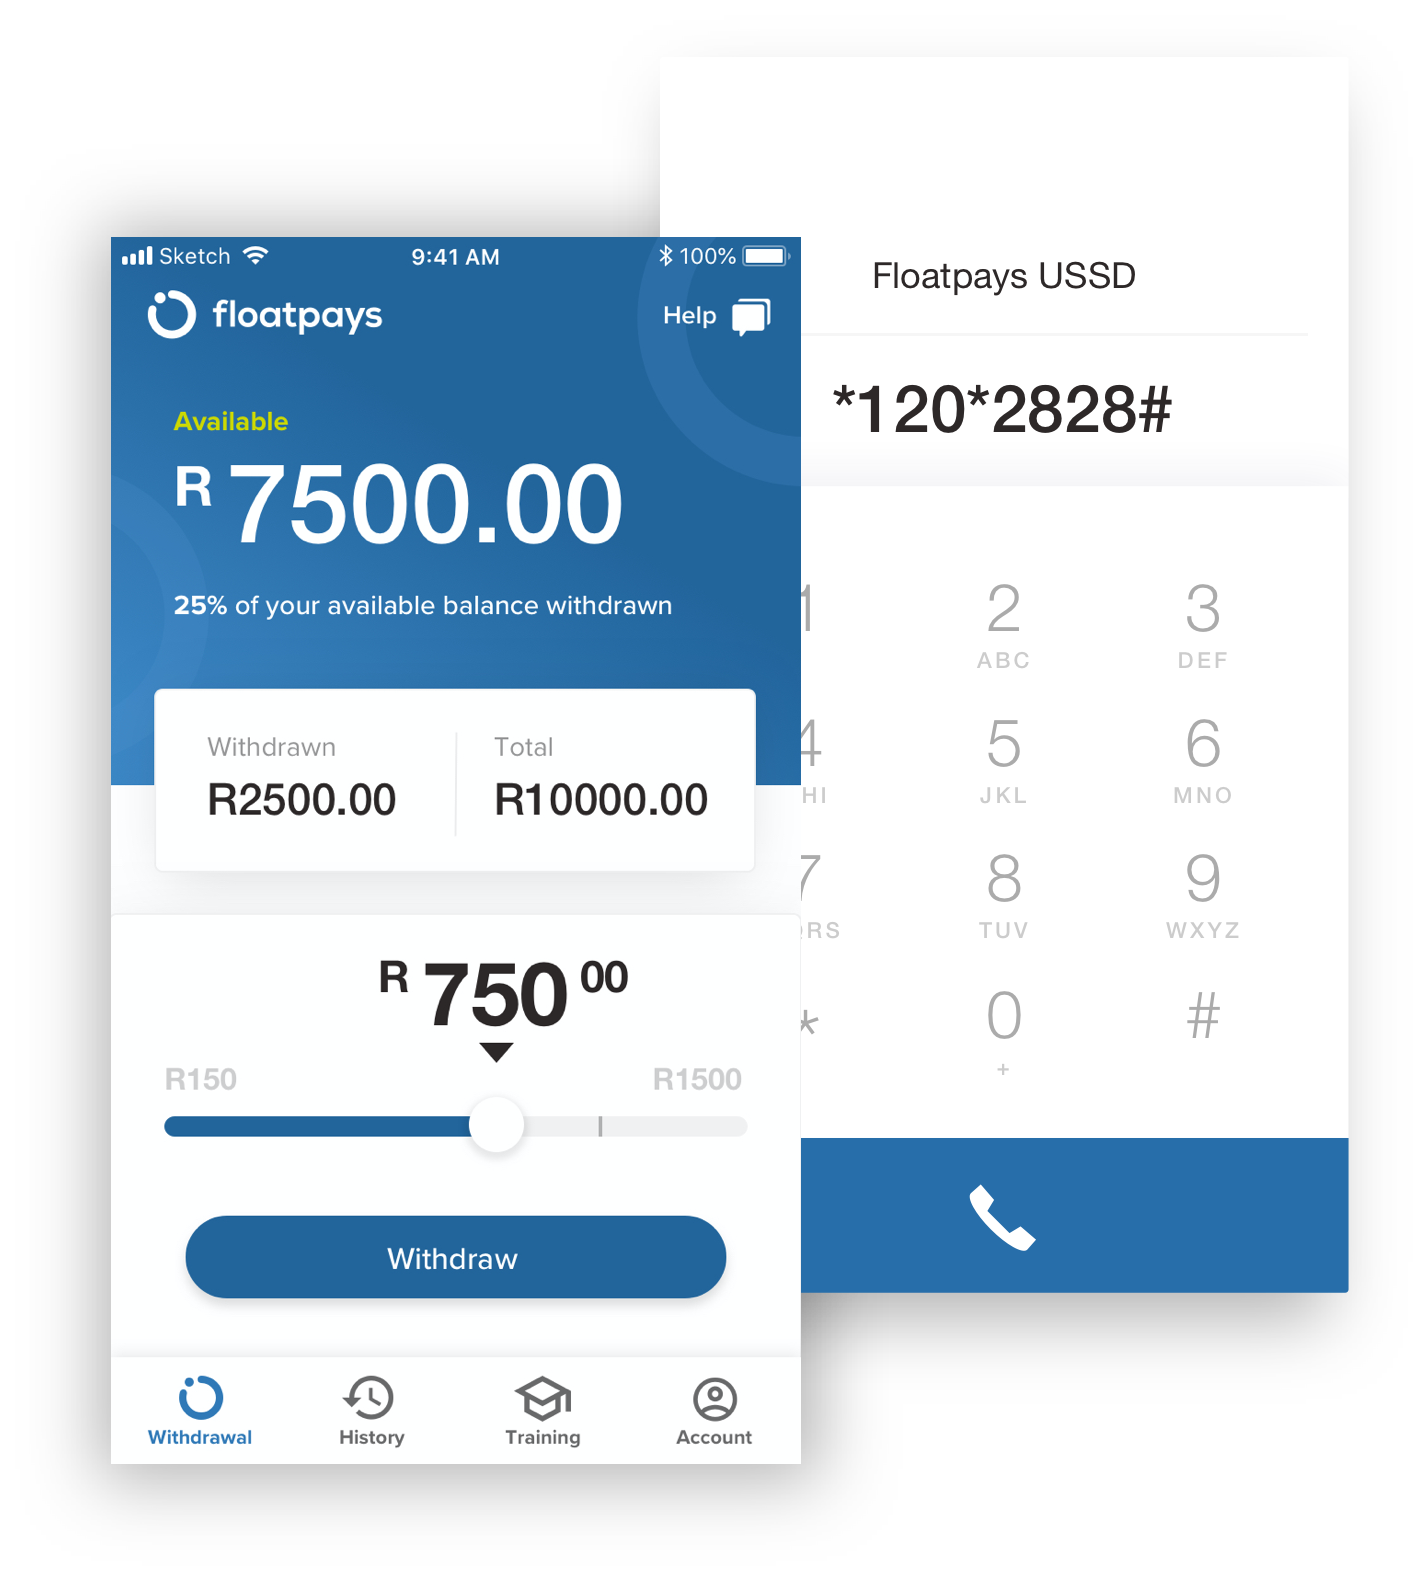 Floatpays – Financial wellbeing made simple